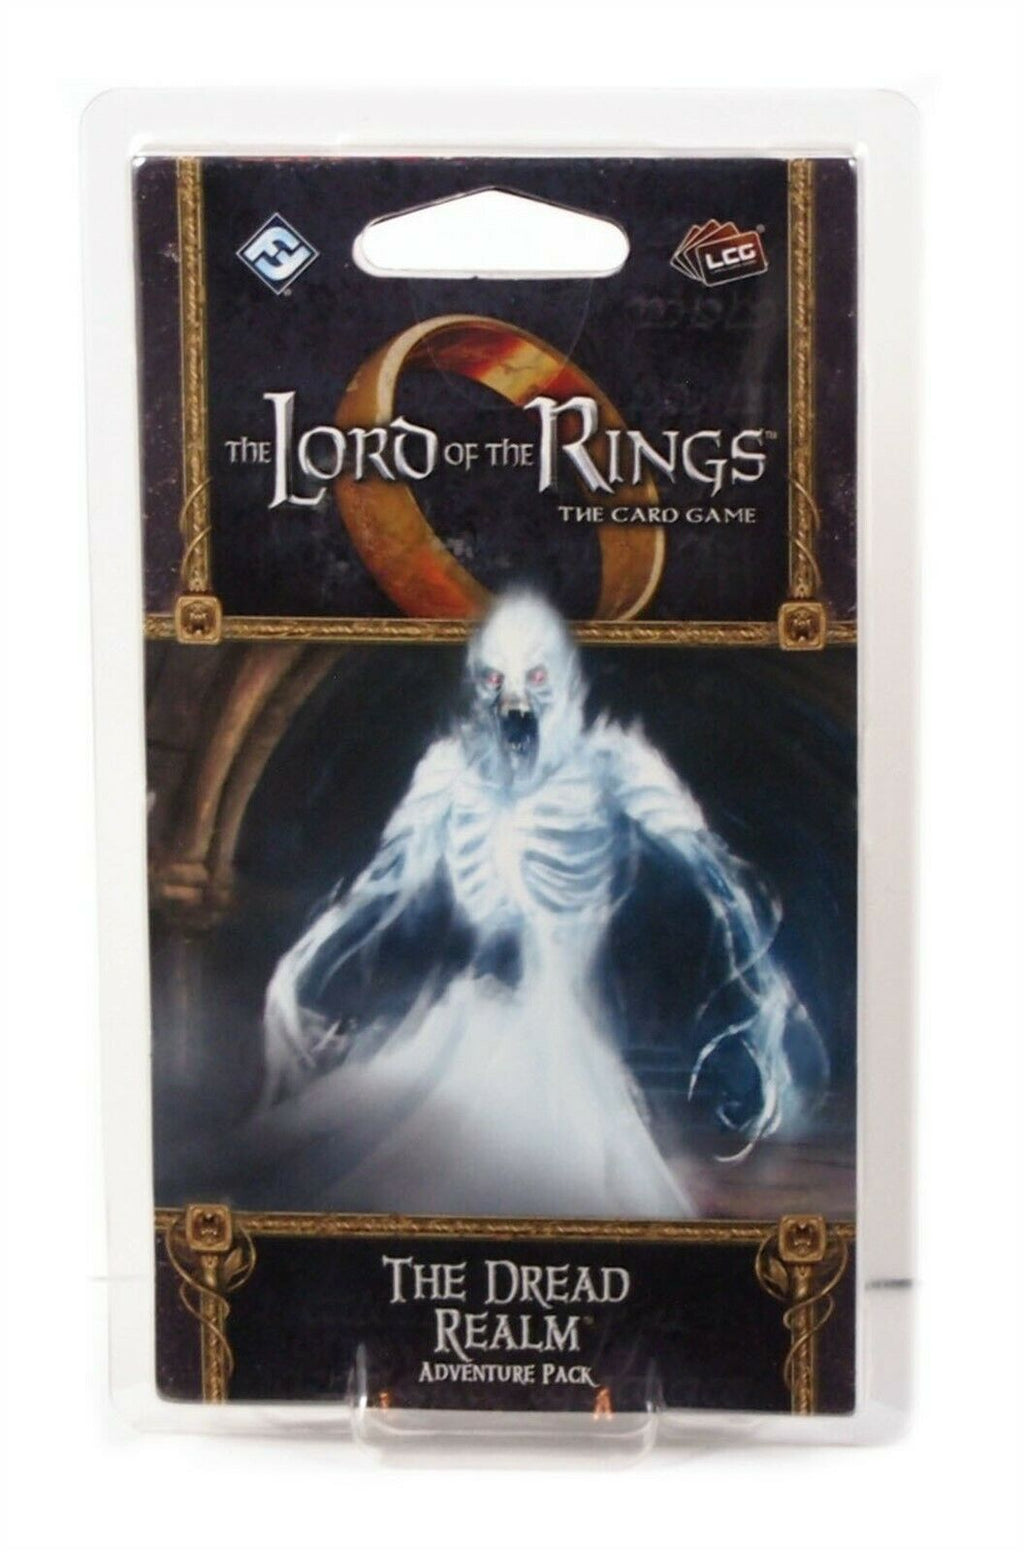 Lord of the Rings LCG, The Dread Realm Adventure pack